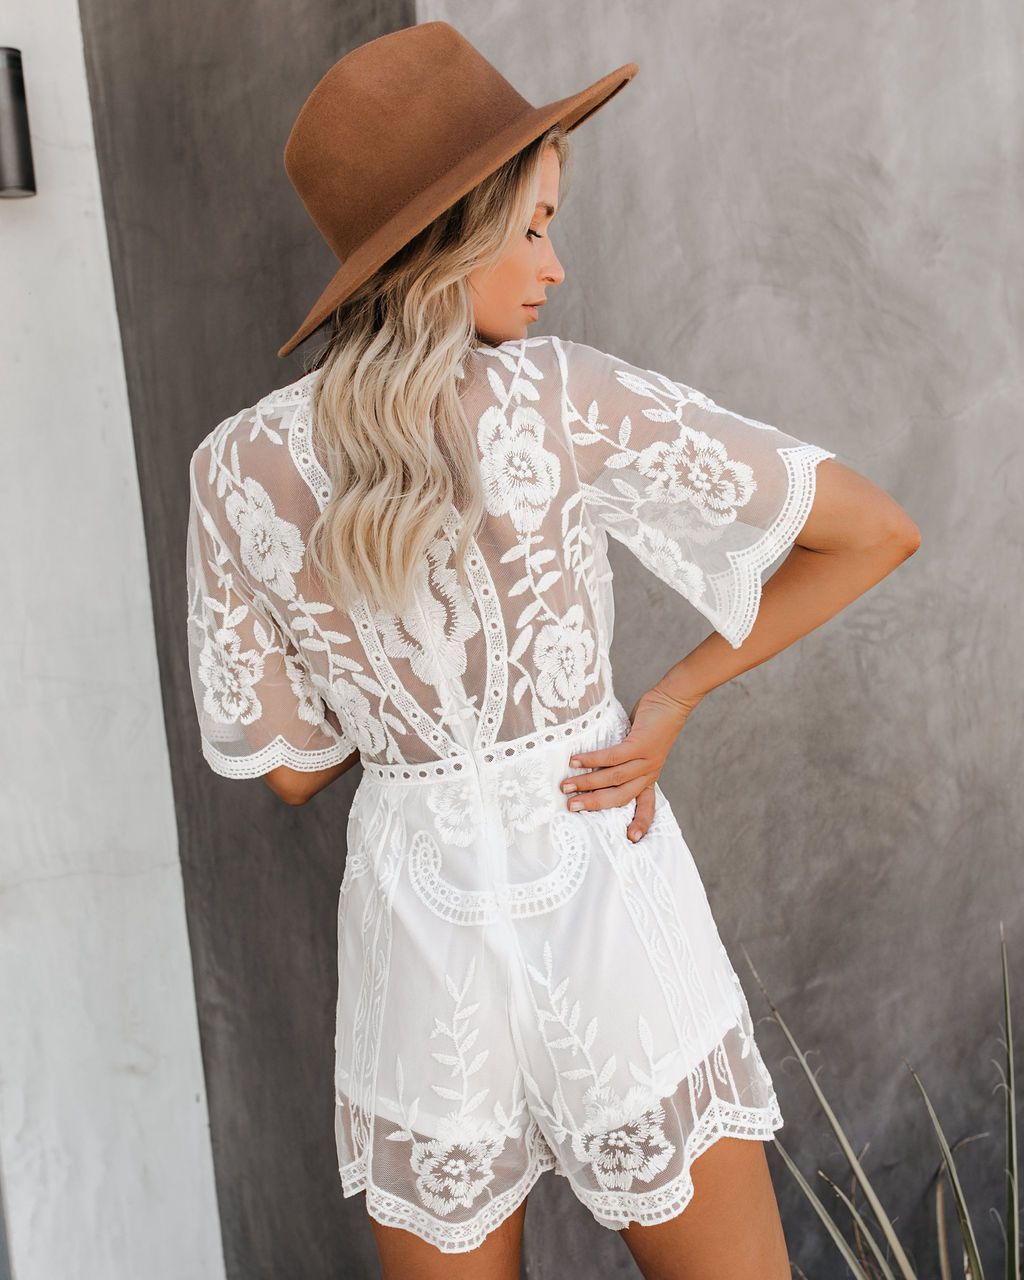 Hera Lace Romper White Vici Lace Romper Lace Jumpsuit With Sleeves [ 1280 x 1024 Pixel ]